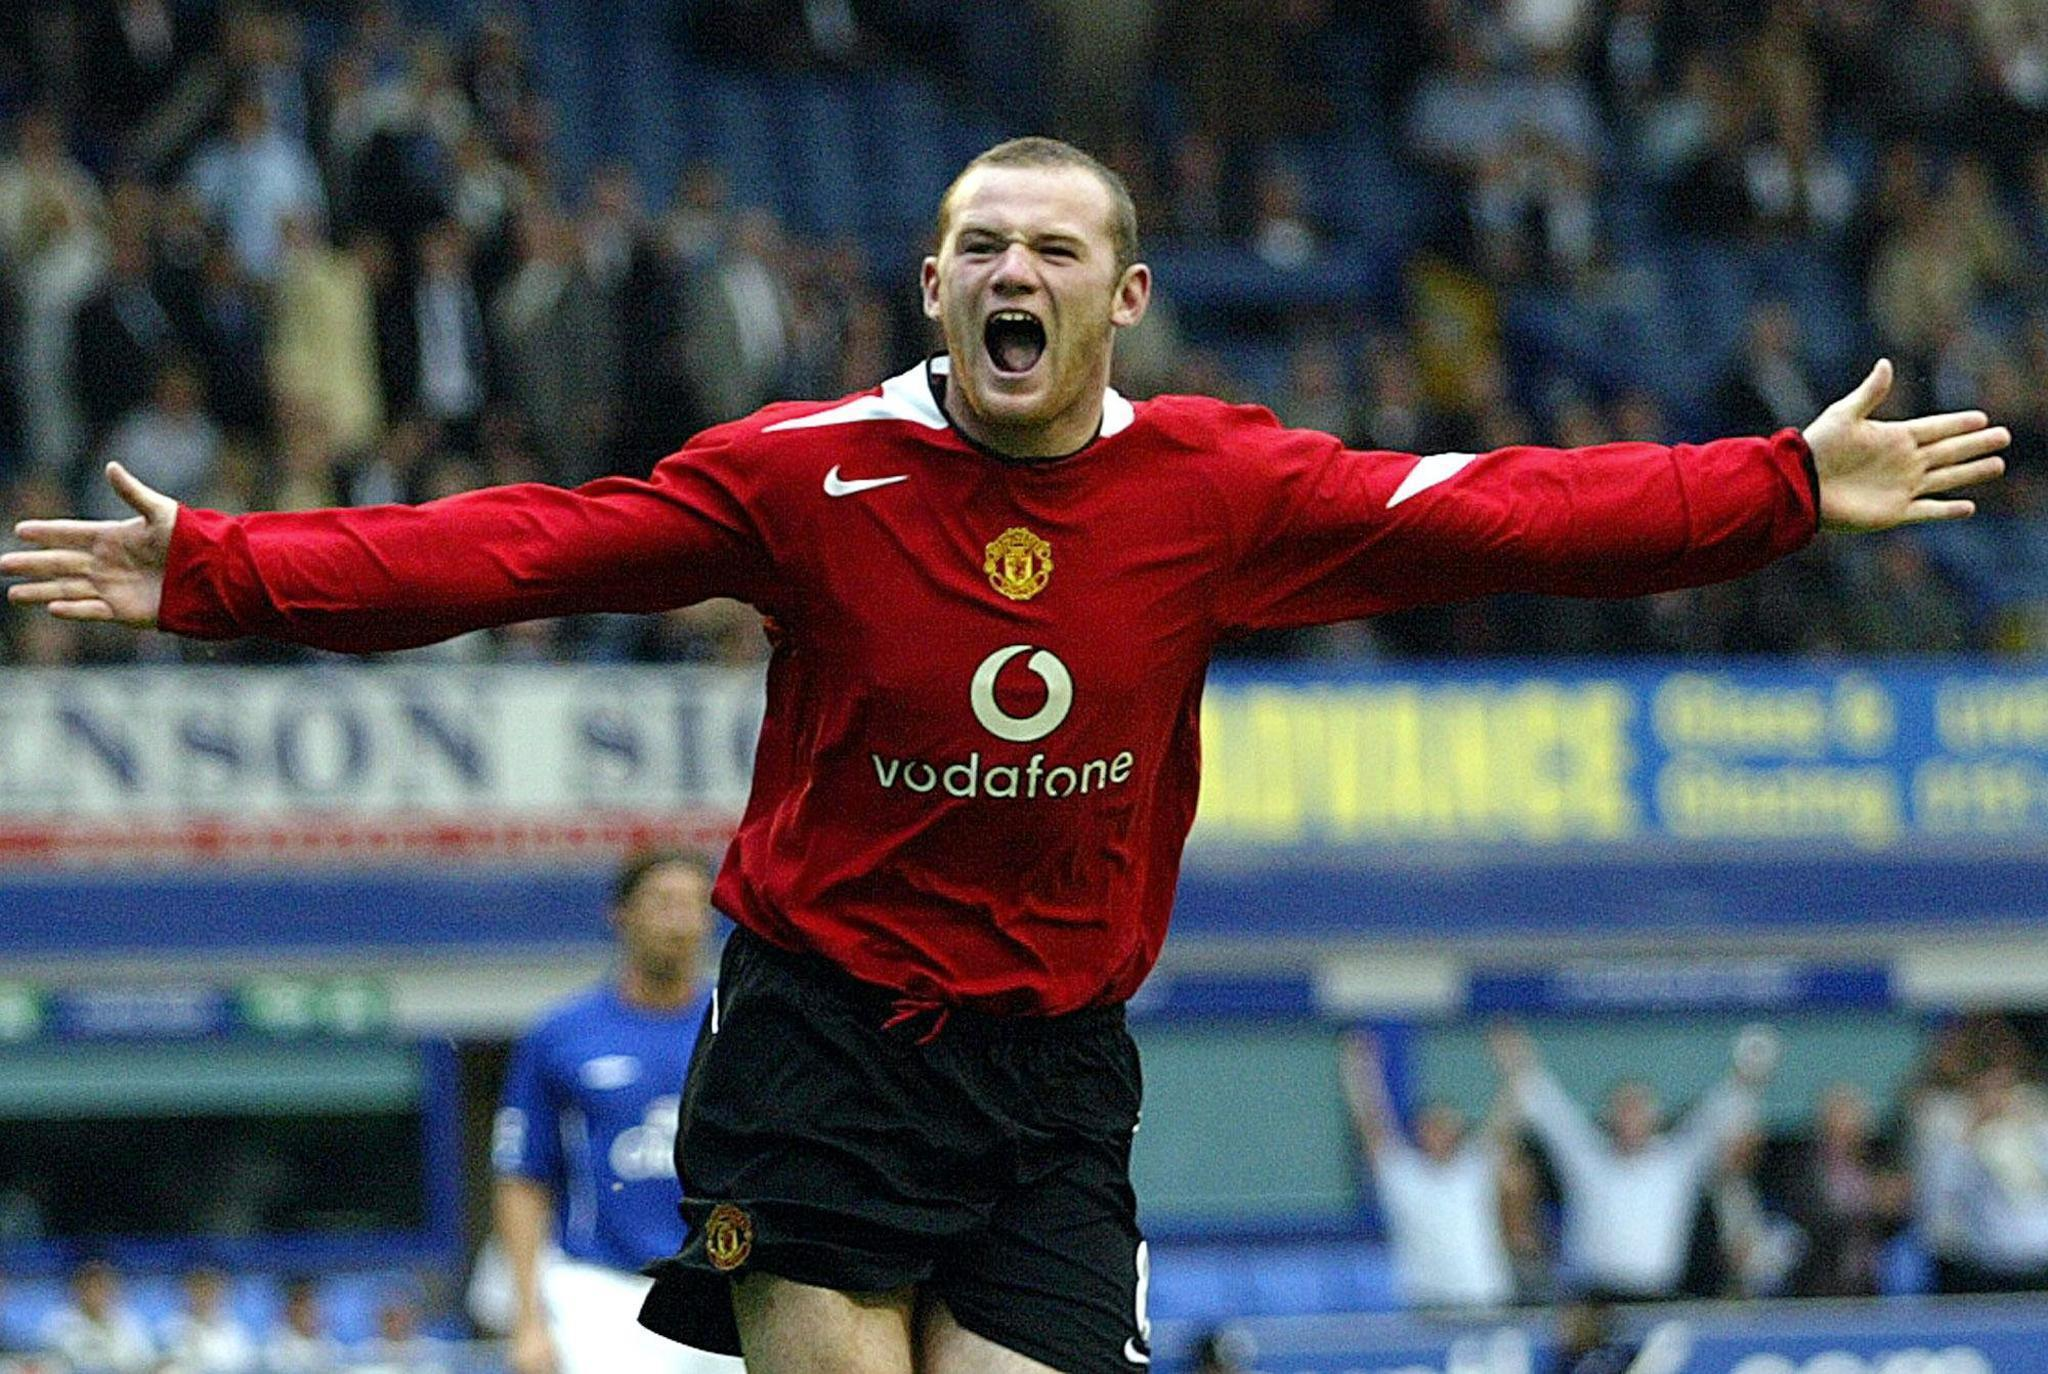 Wayne Rooney joined Manchester United from Everton in summer of 2004